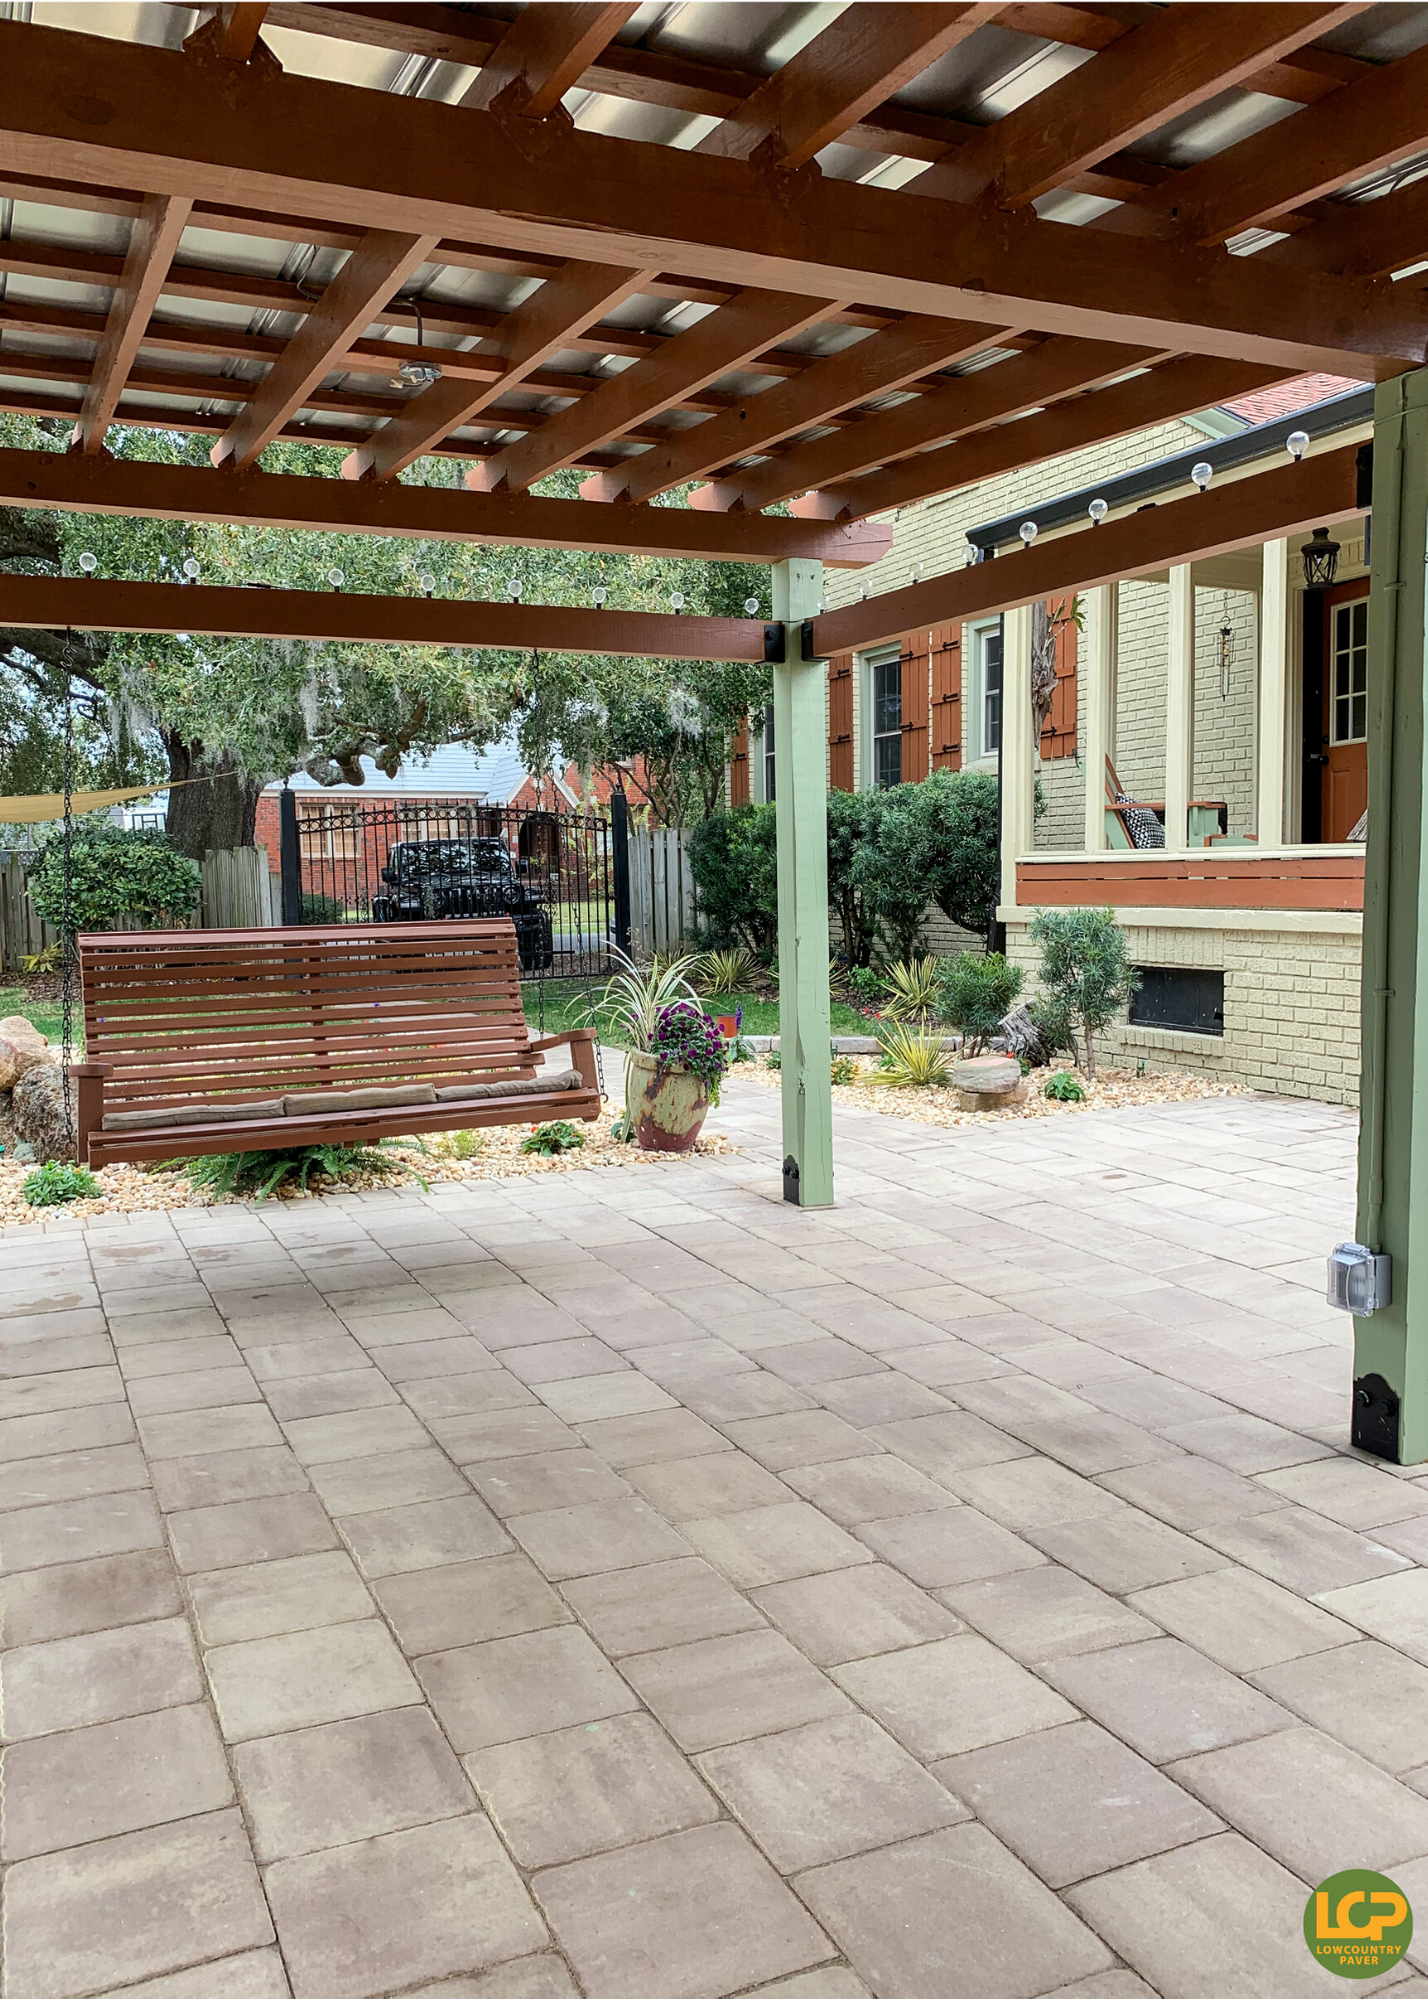 Paver patio and garden space in 2020 Outdoor oasis